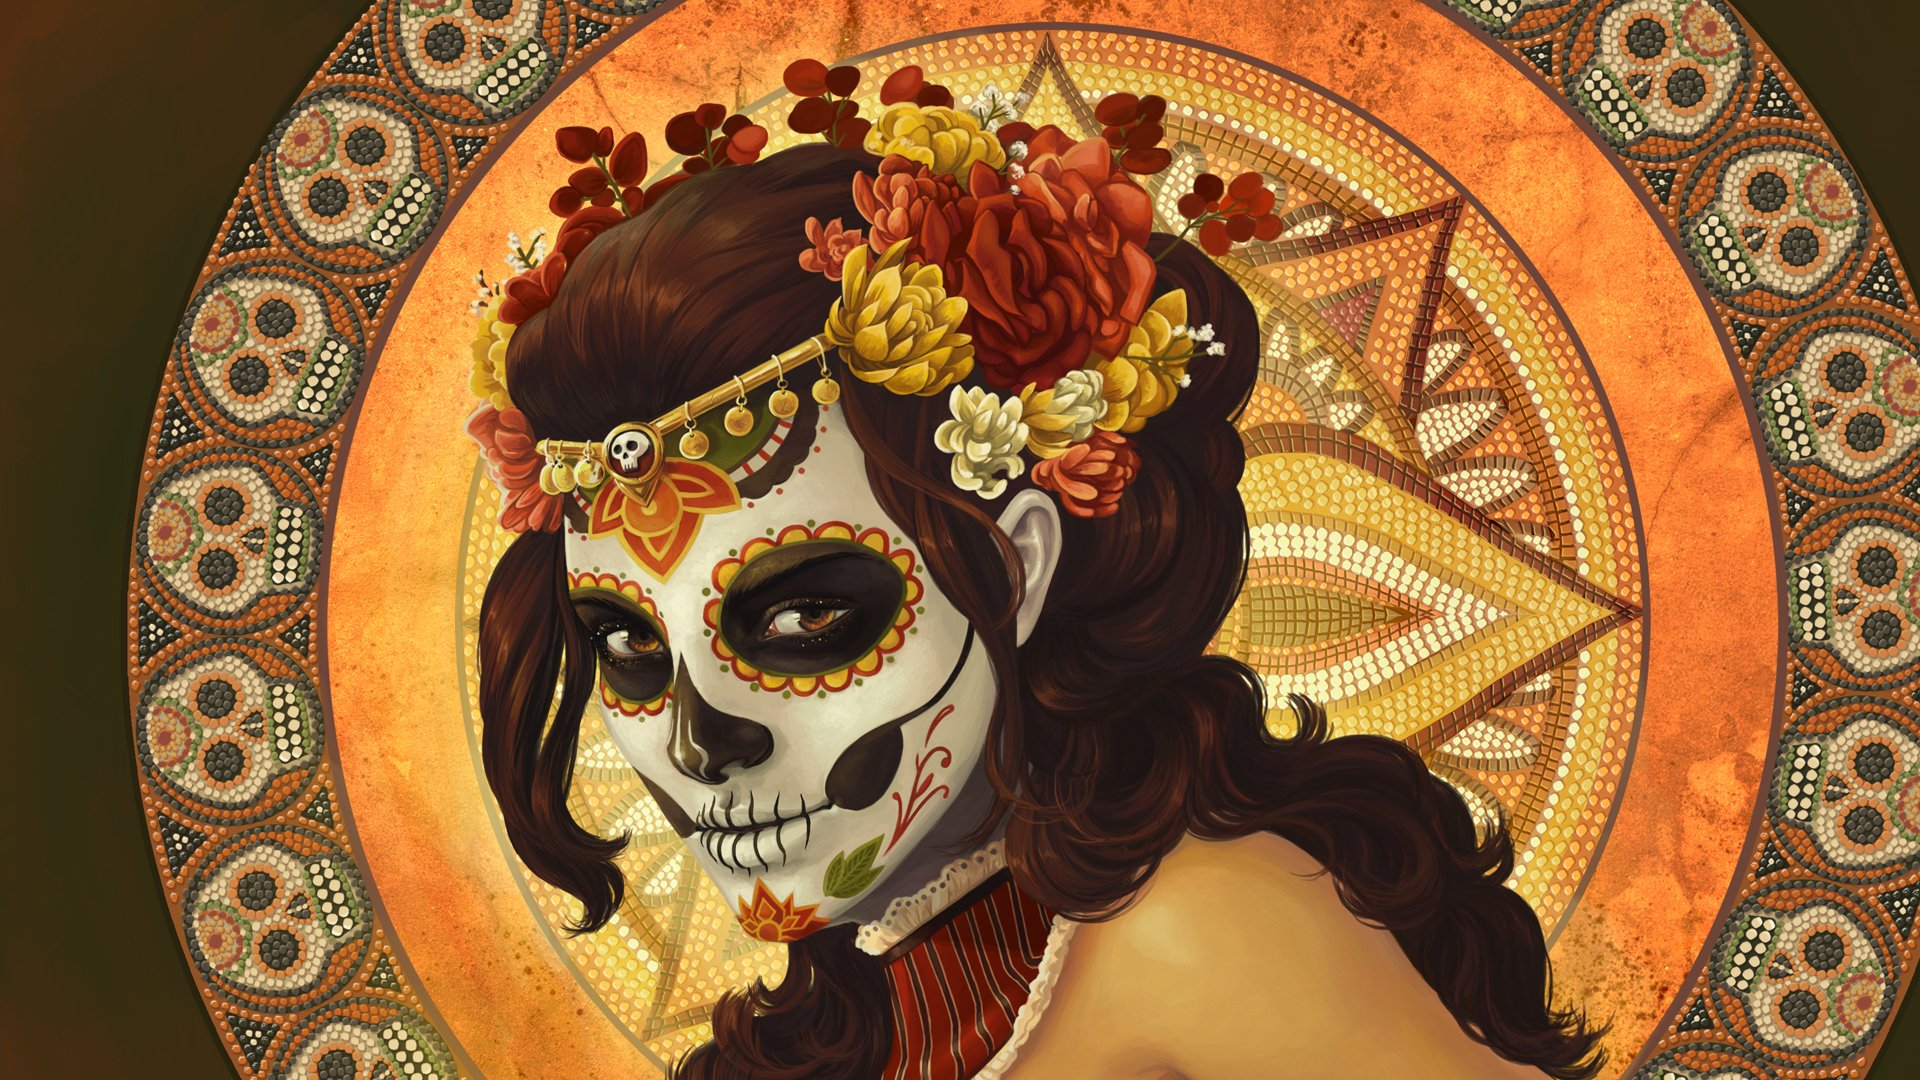 Artistic - Sugar Skull  Wallpaper